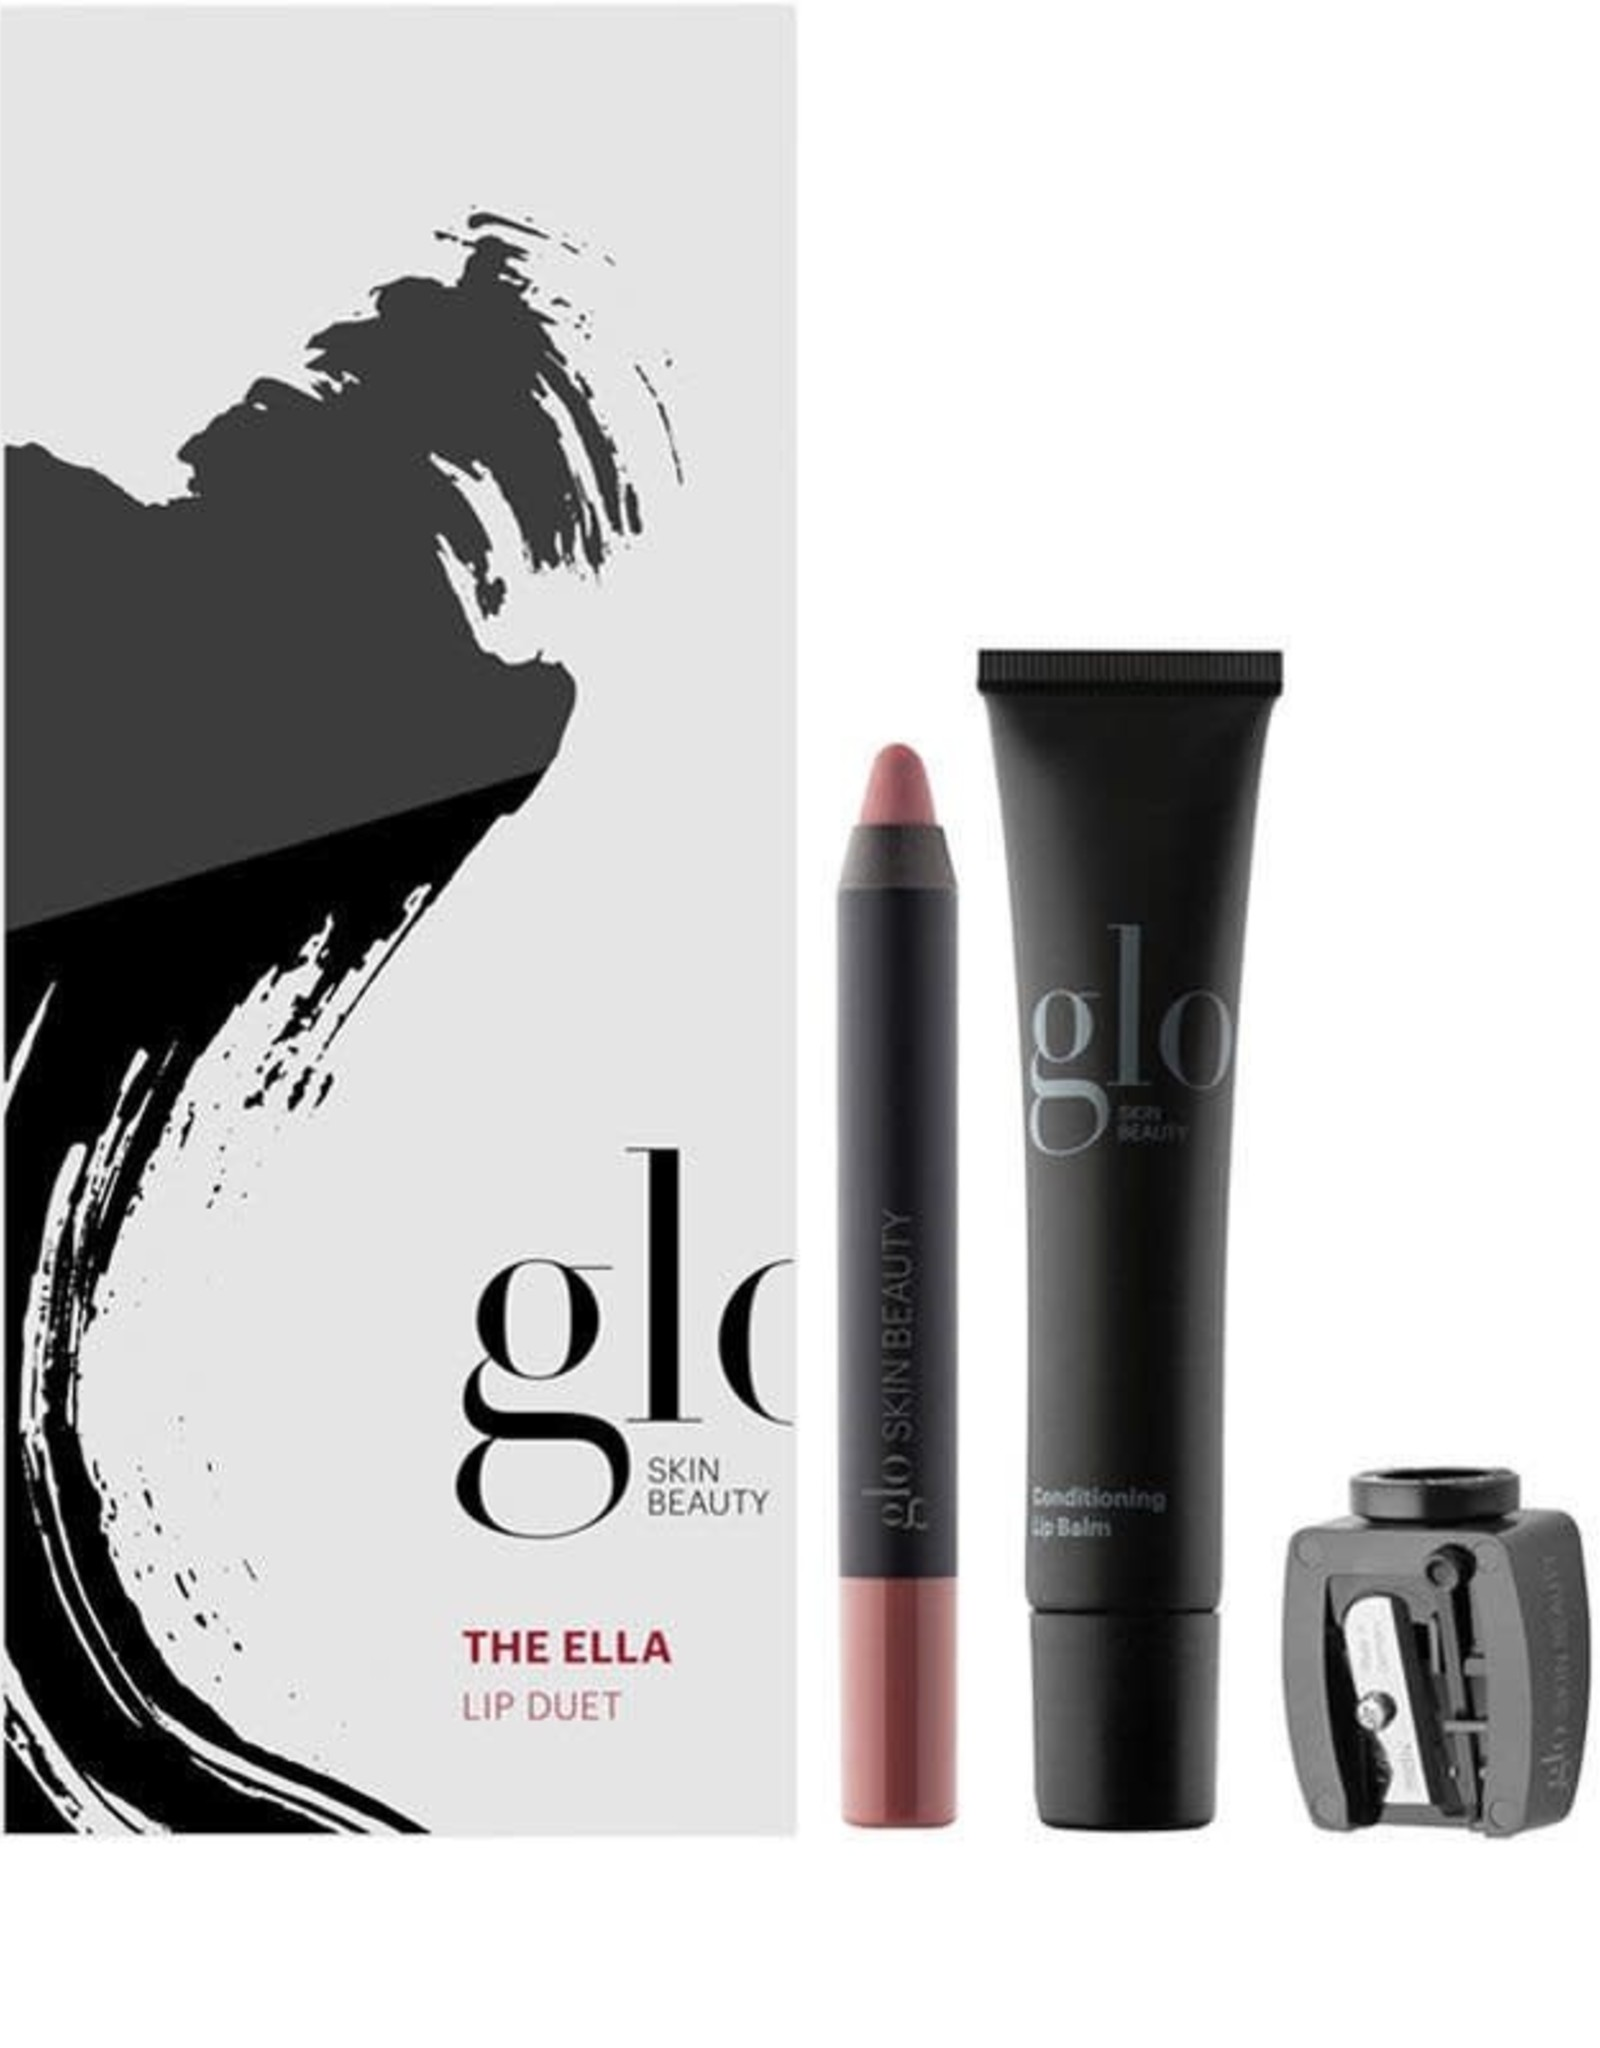 Glo Skin Beauty The Ella Lip Duet